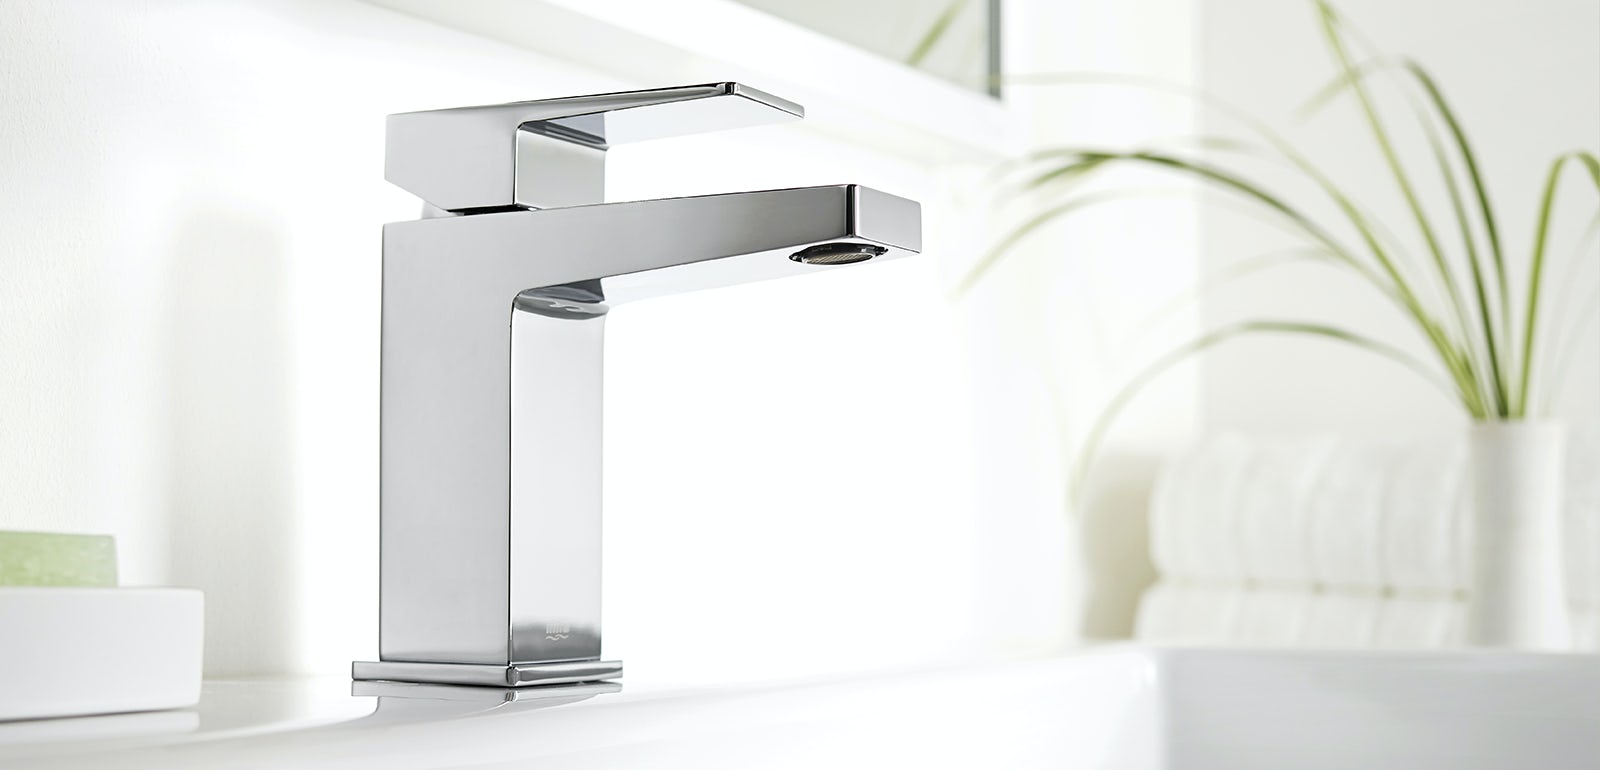 Style and substance: Introducing Mira taps